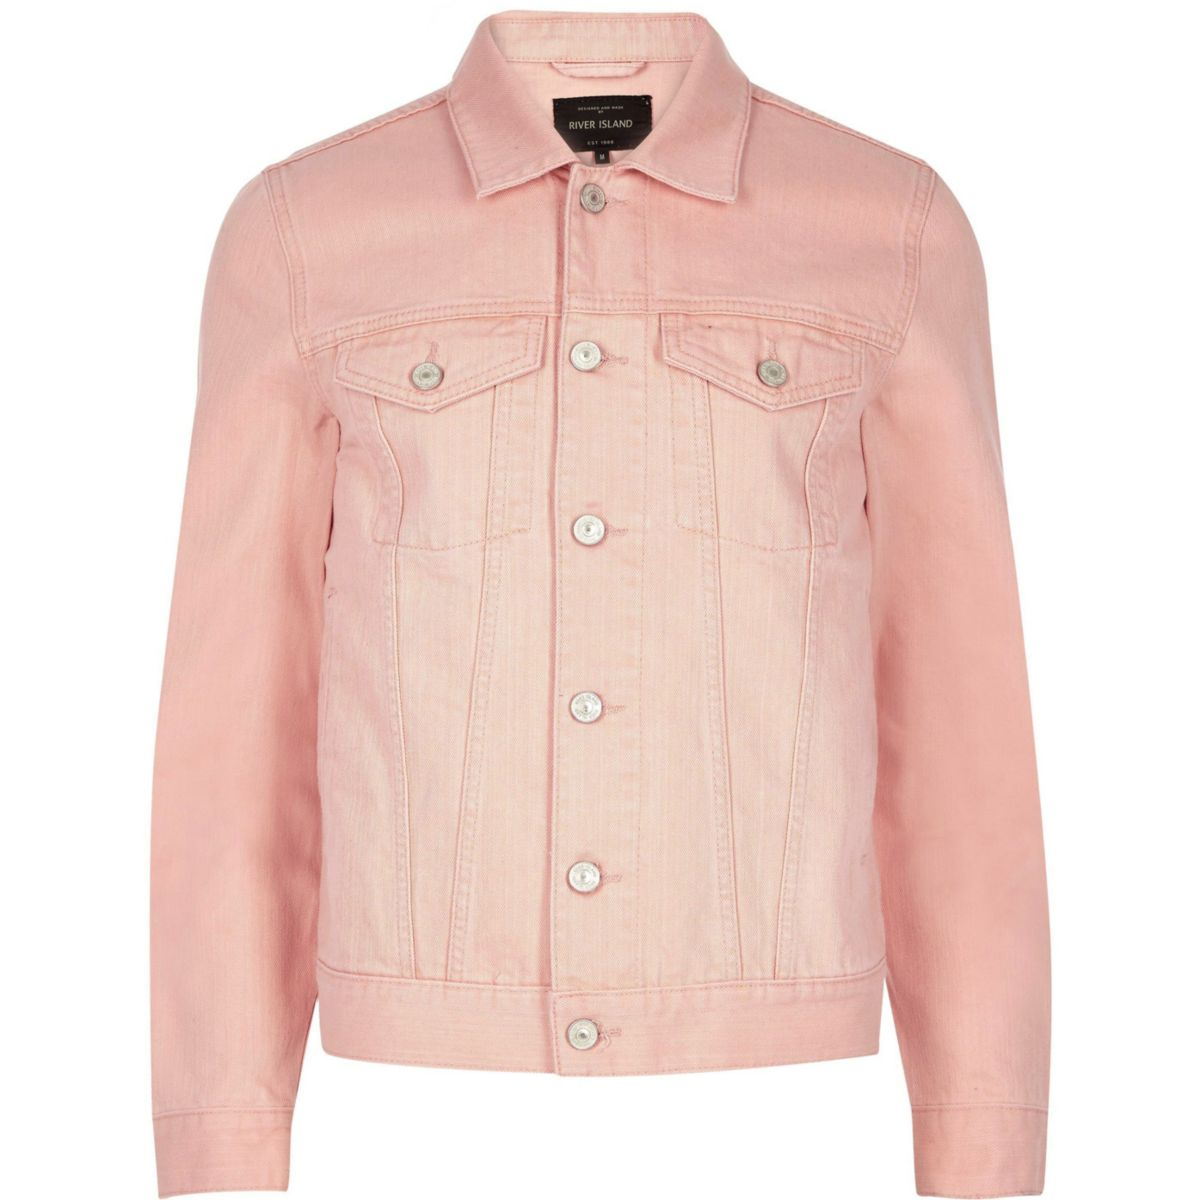 Big and Tall pink denim jacket